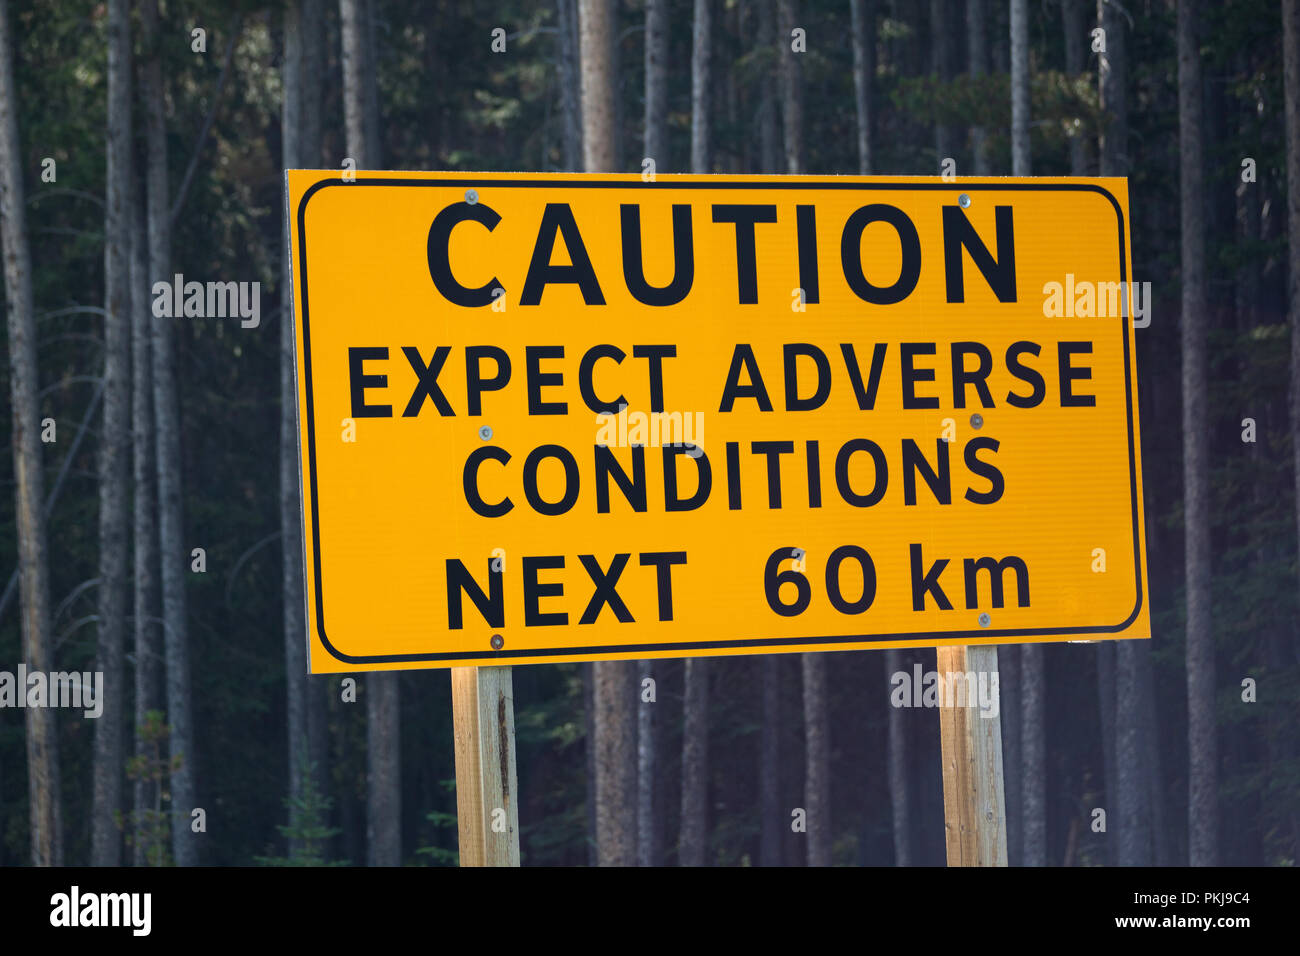 Caution road sign, expect adverse conditions - Stock Image